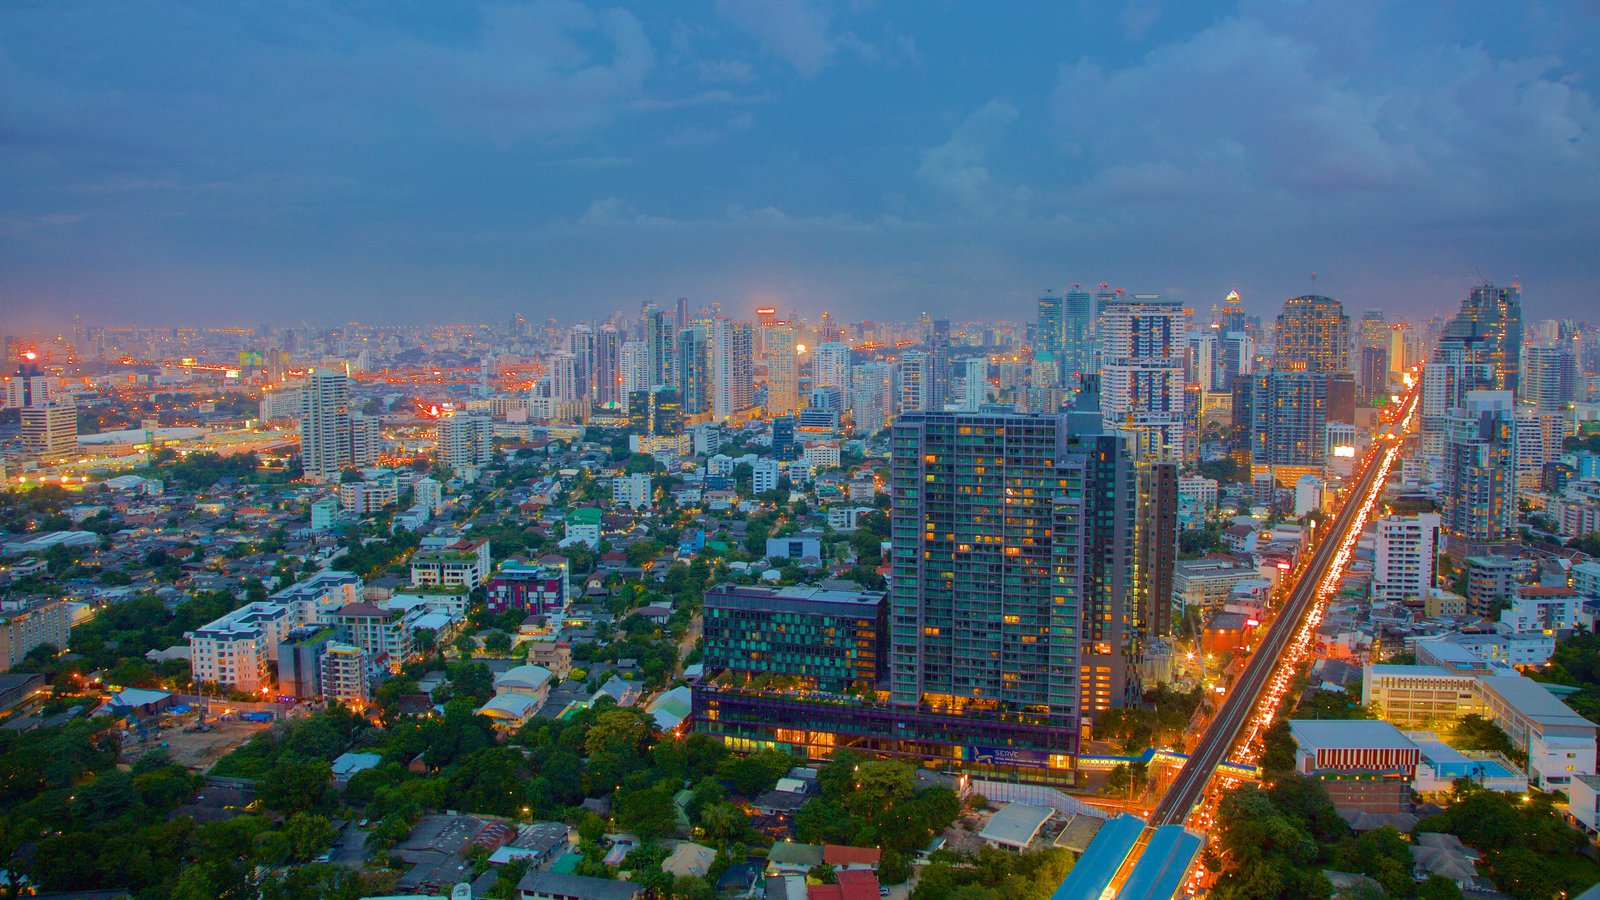 Sukhumvit showing night scenes, landscape views and cbd